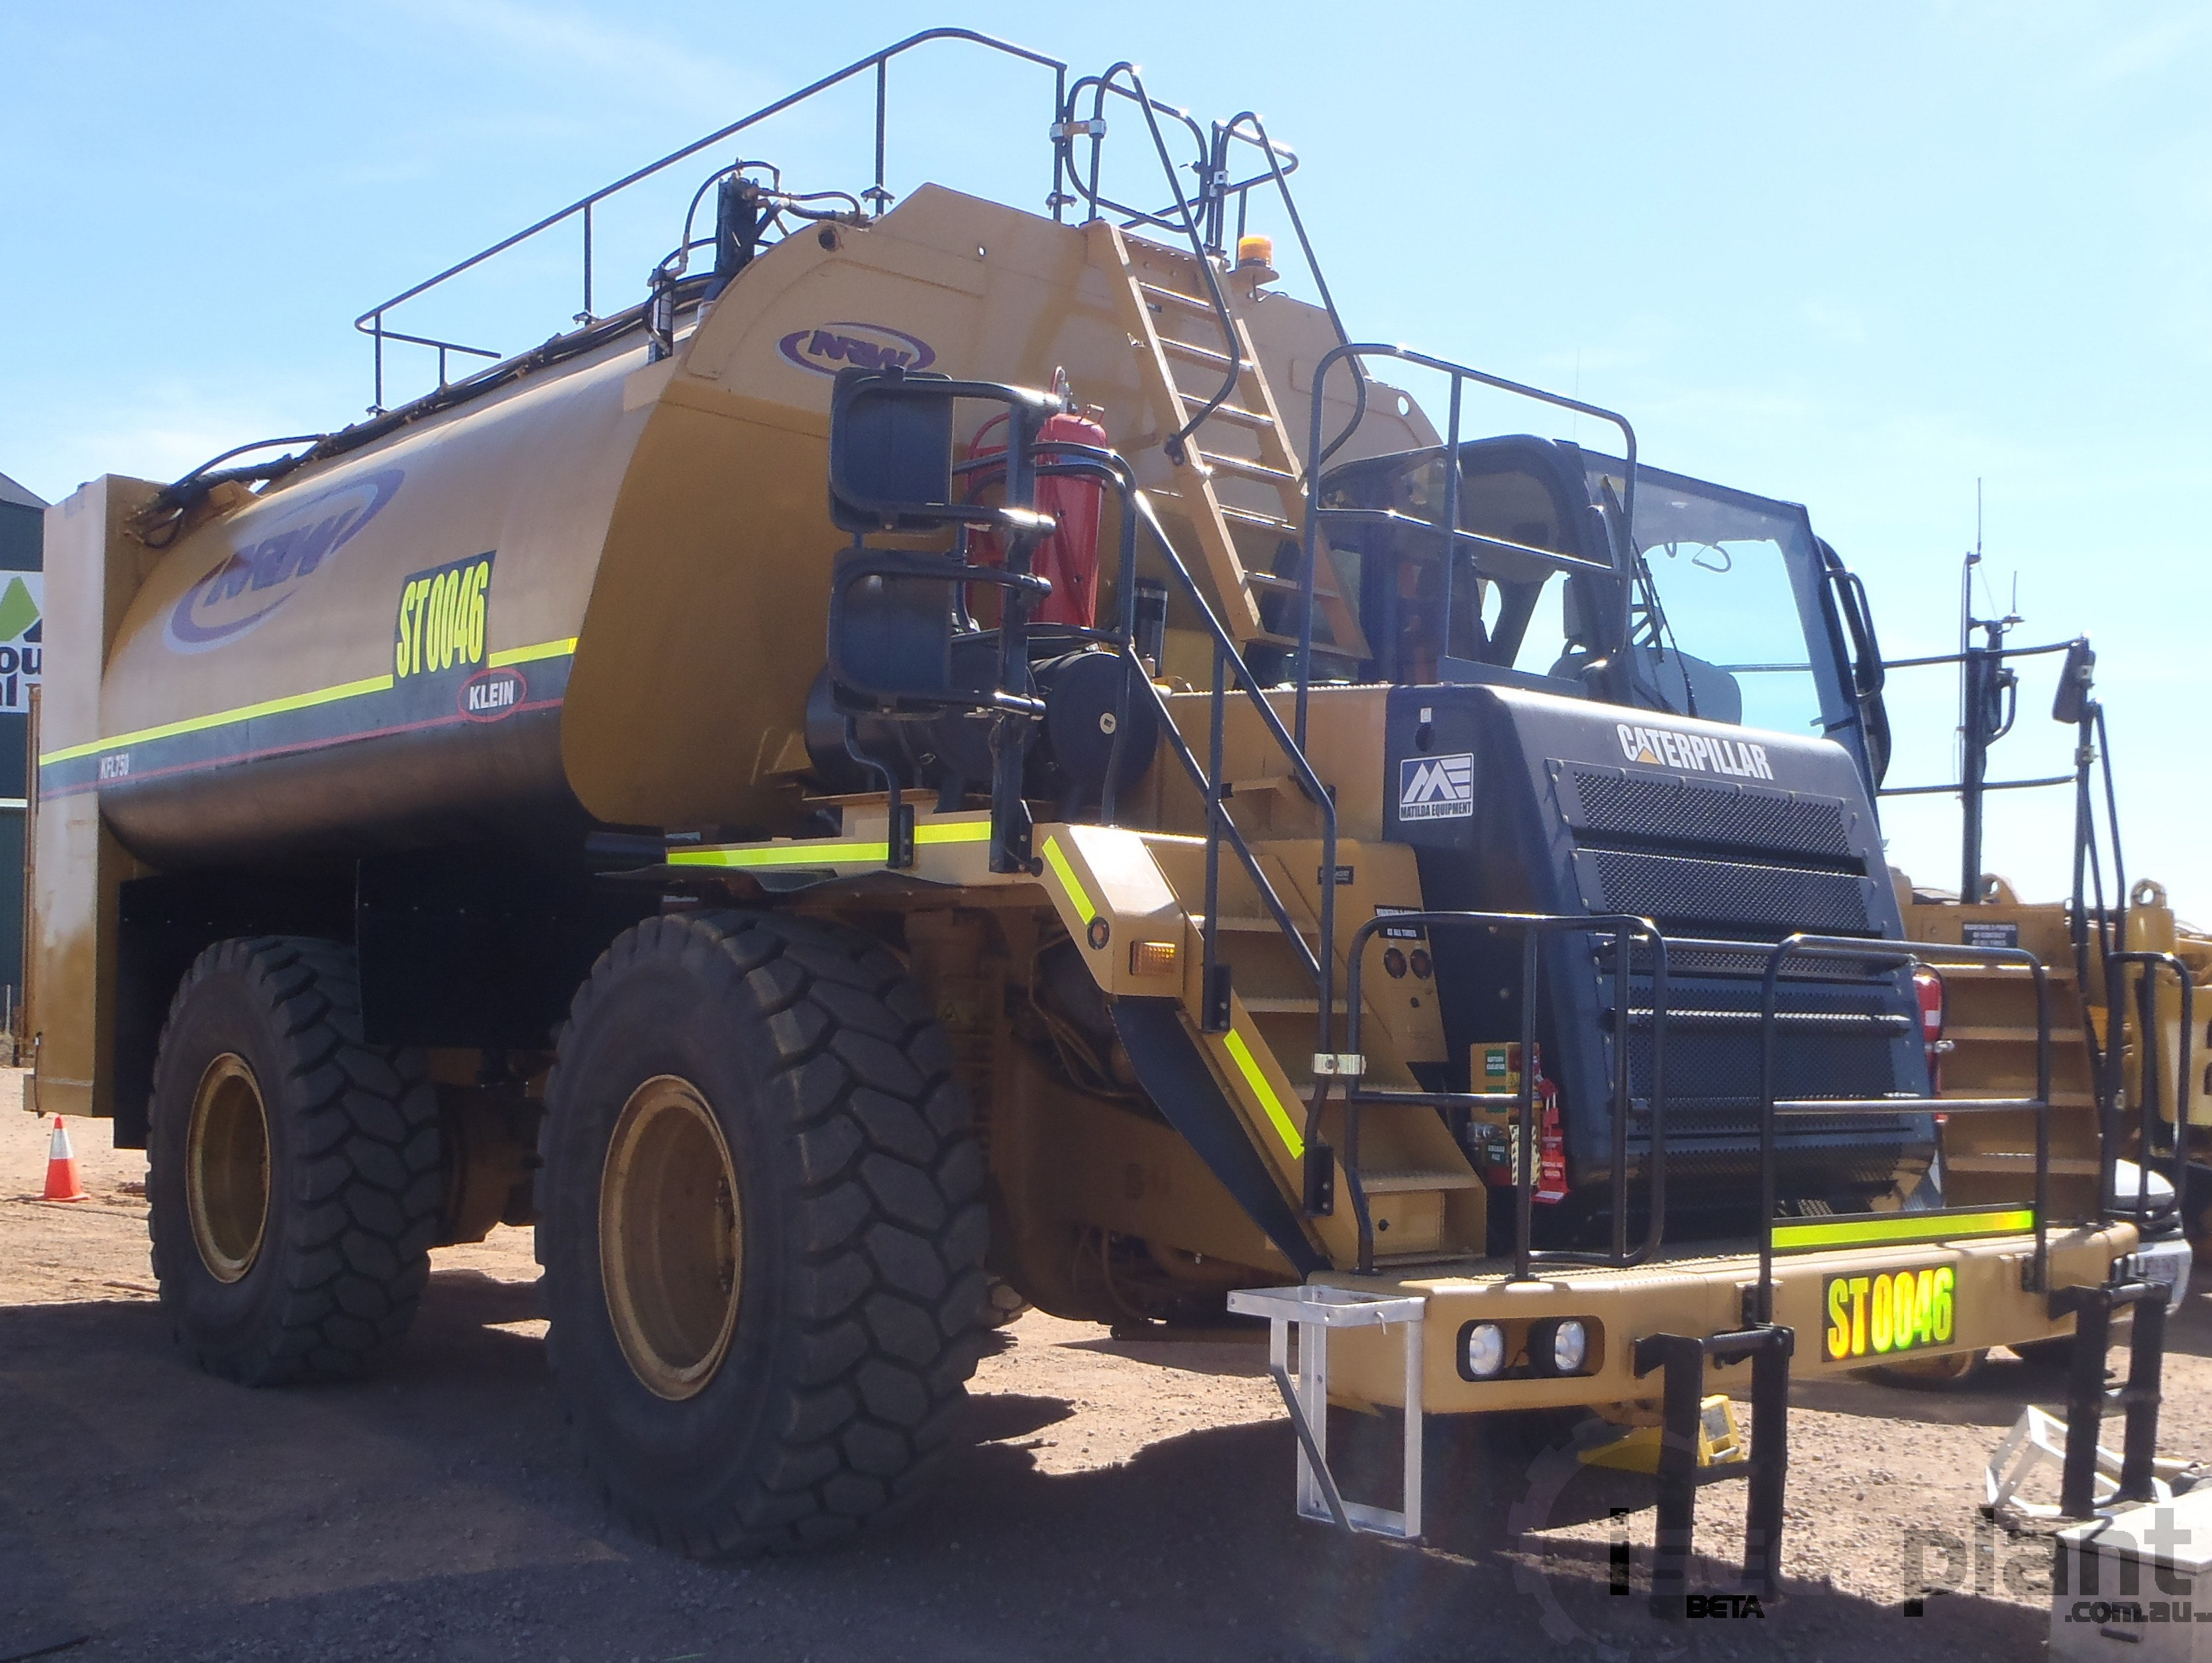 12000 - 20000L Service Truck for hire - Matilda Equipment